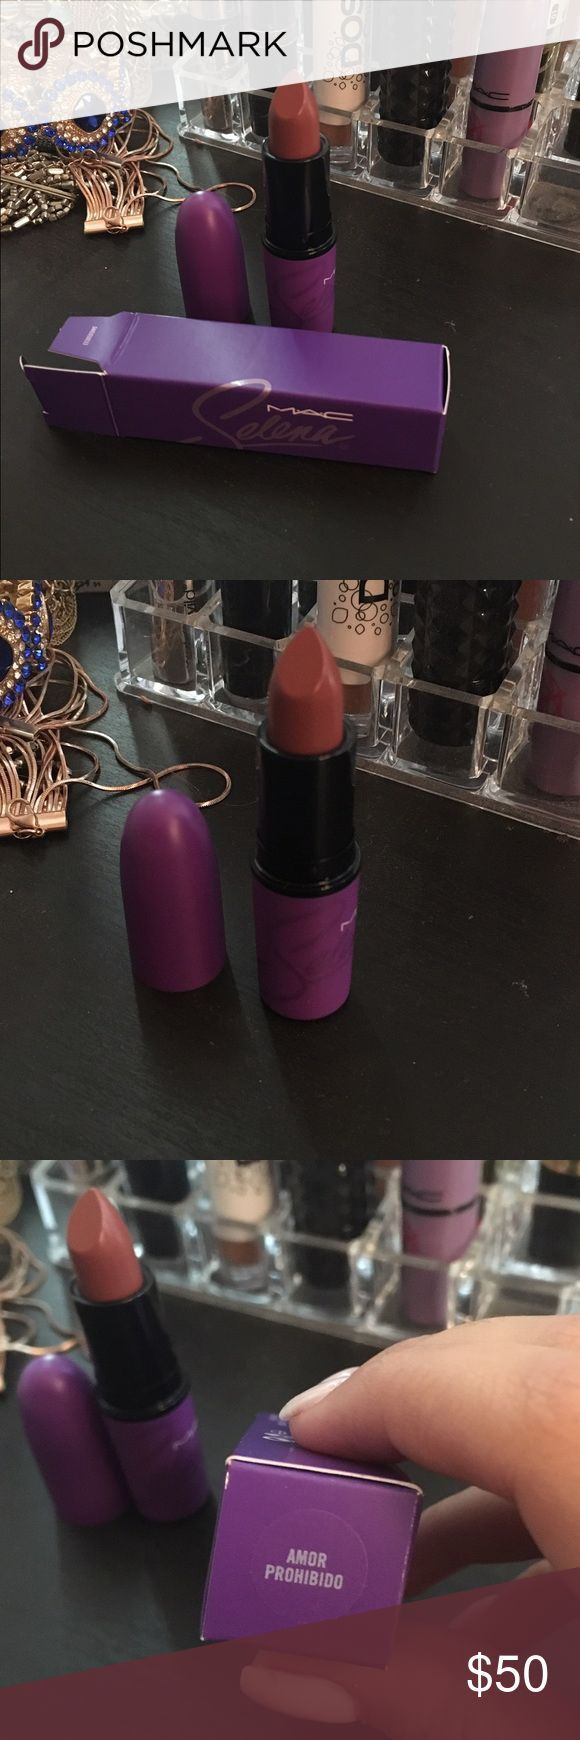 Selena Mac collection Amor Prohibido lipstick Worn twice. Not really my cup of t...,